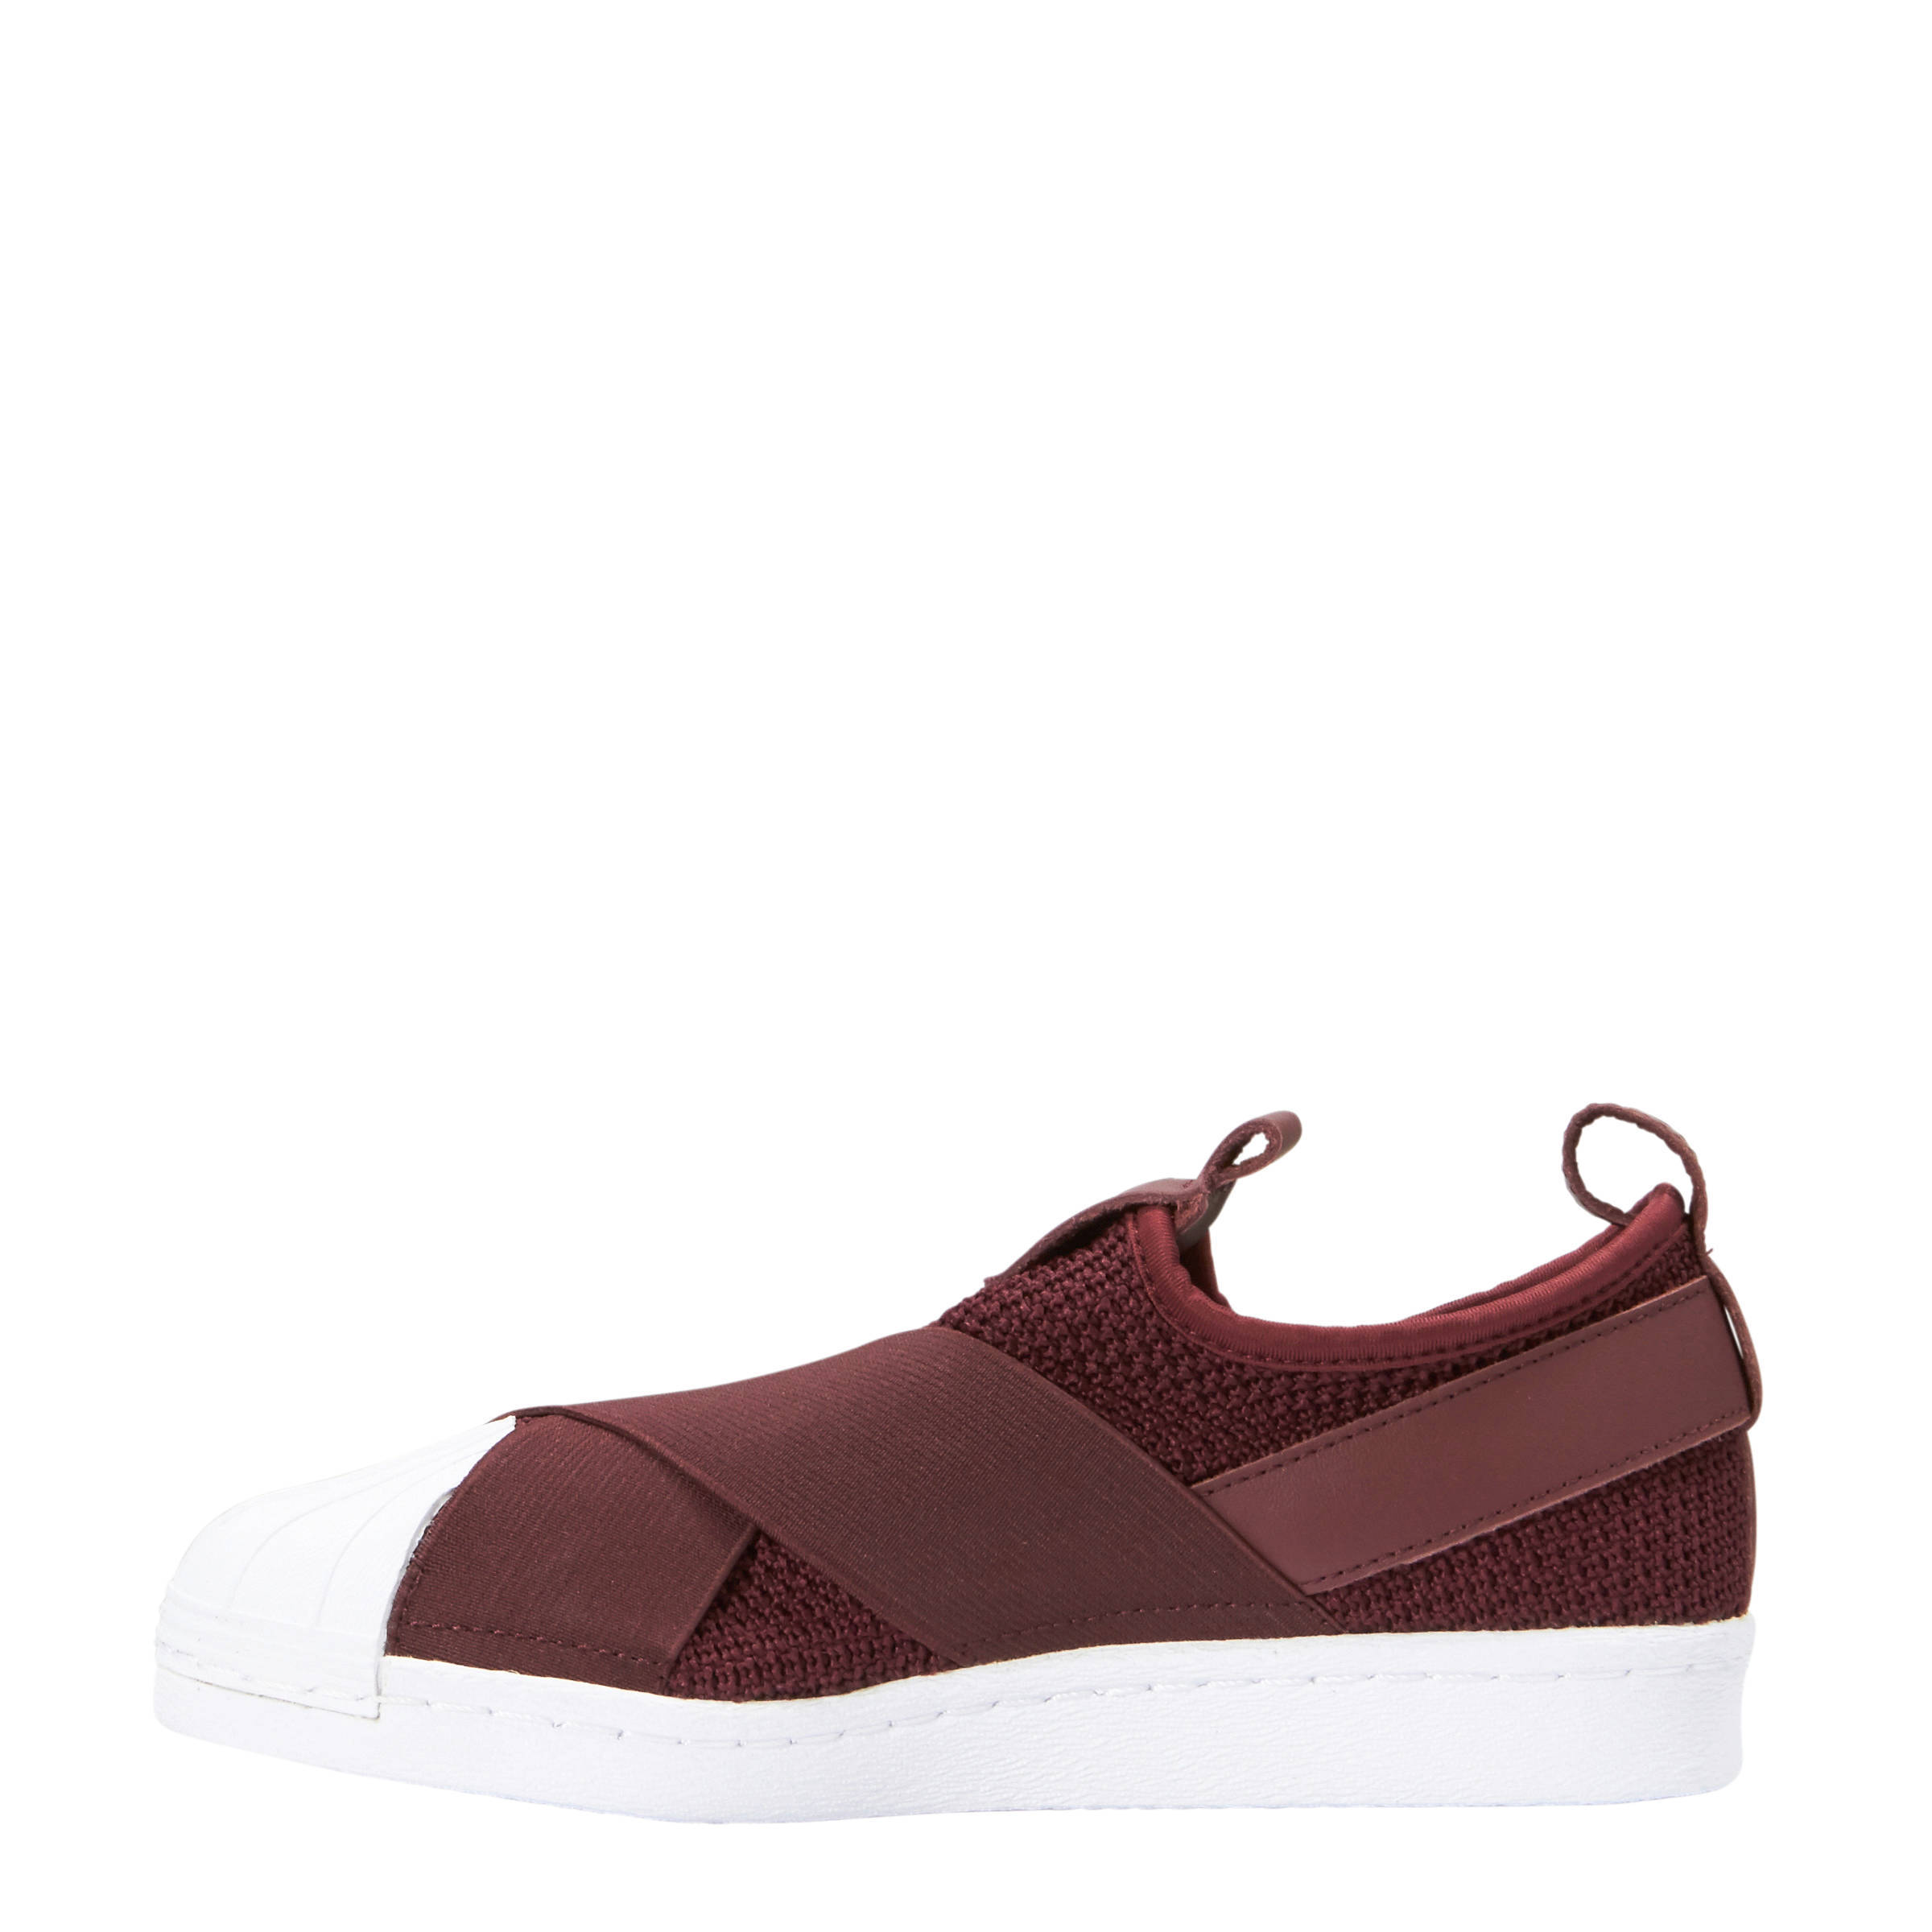 adidas sneakers bordeaux rood